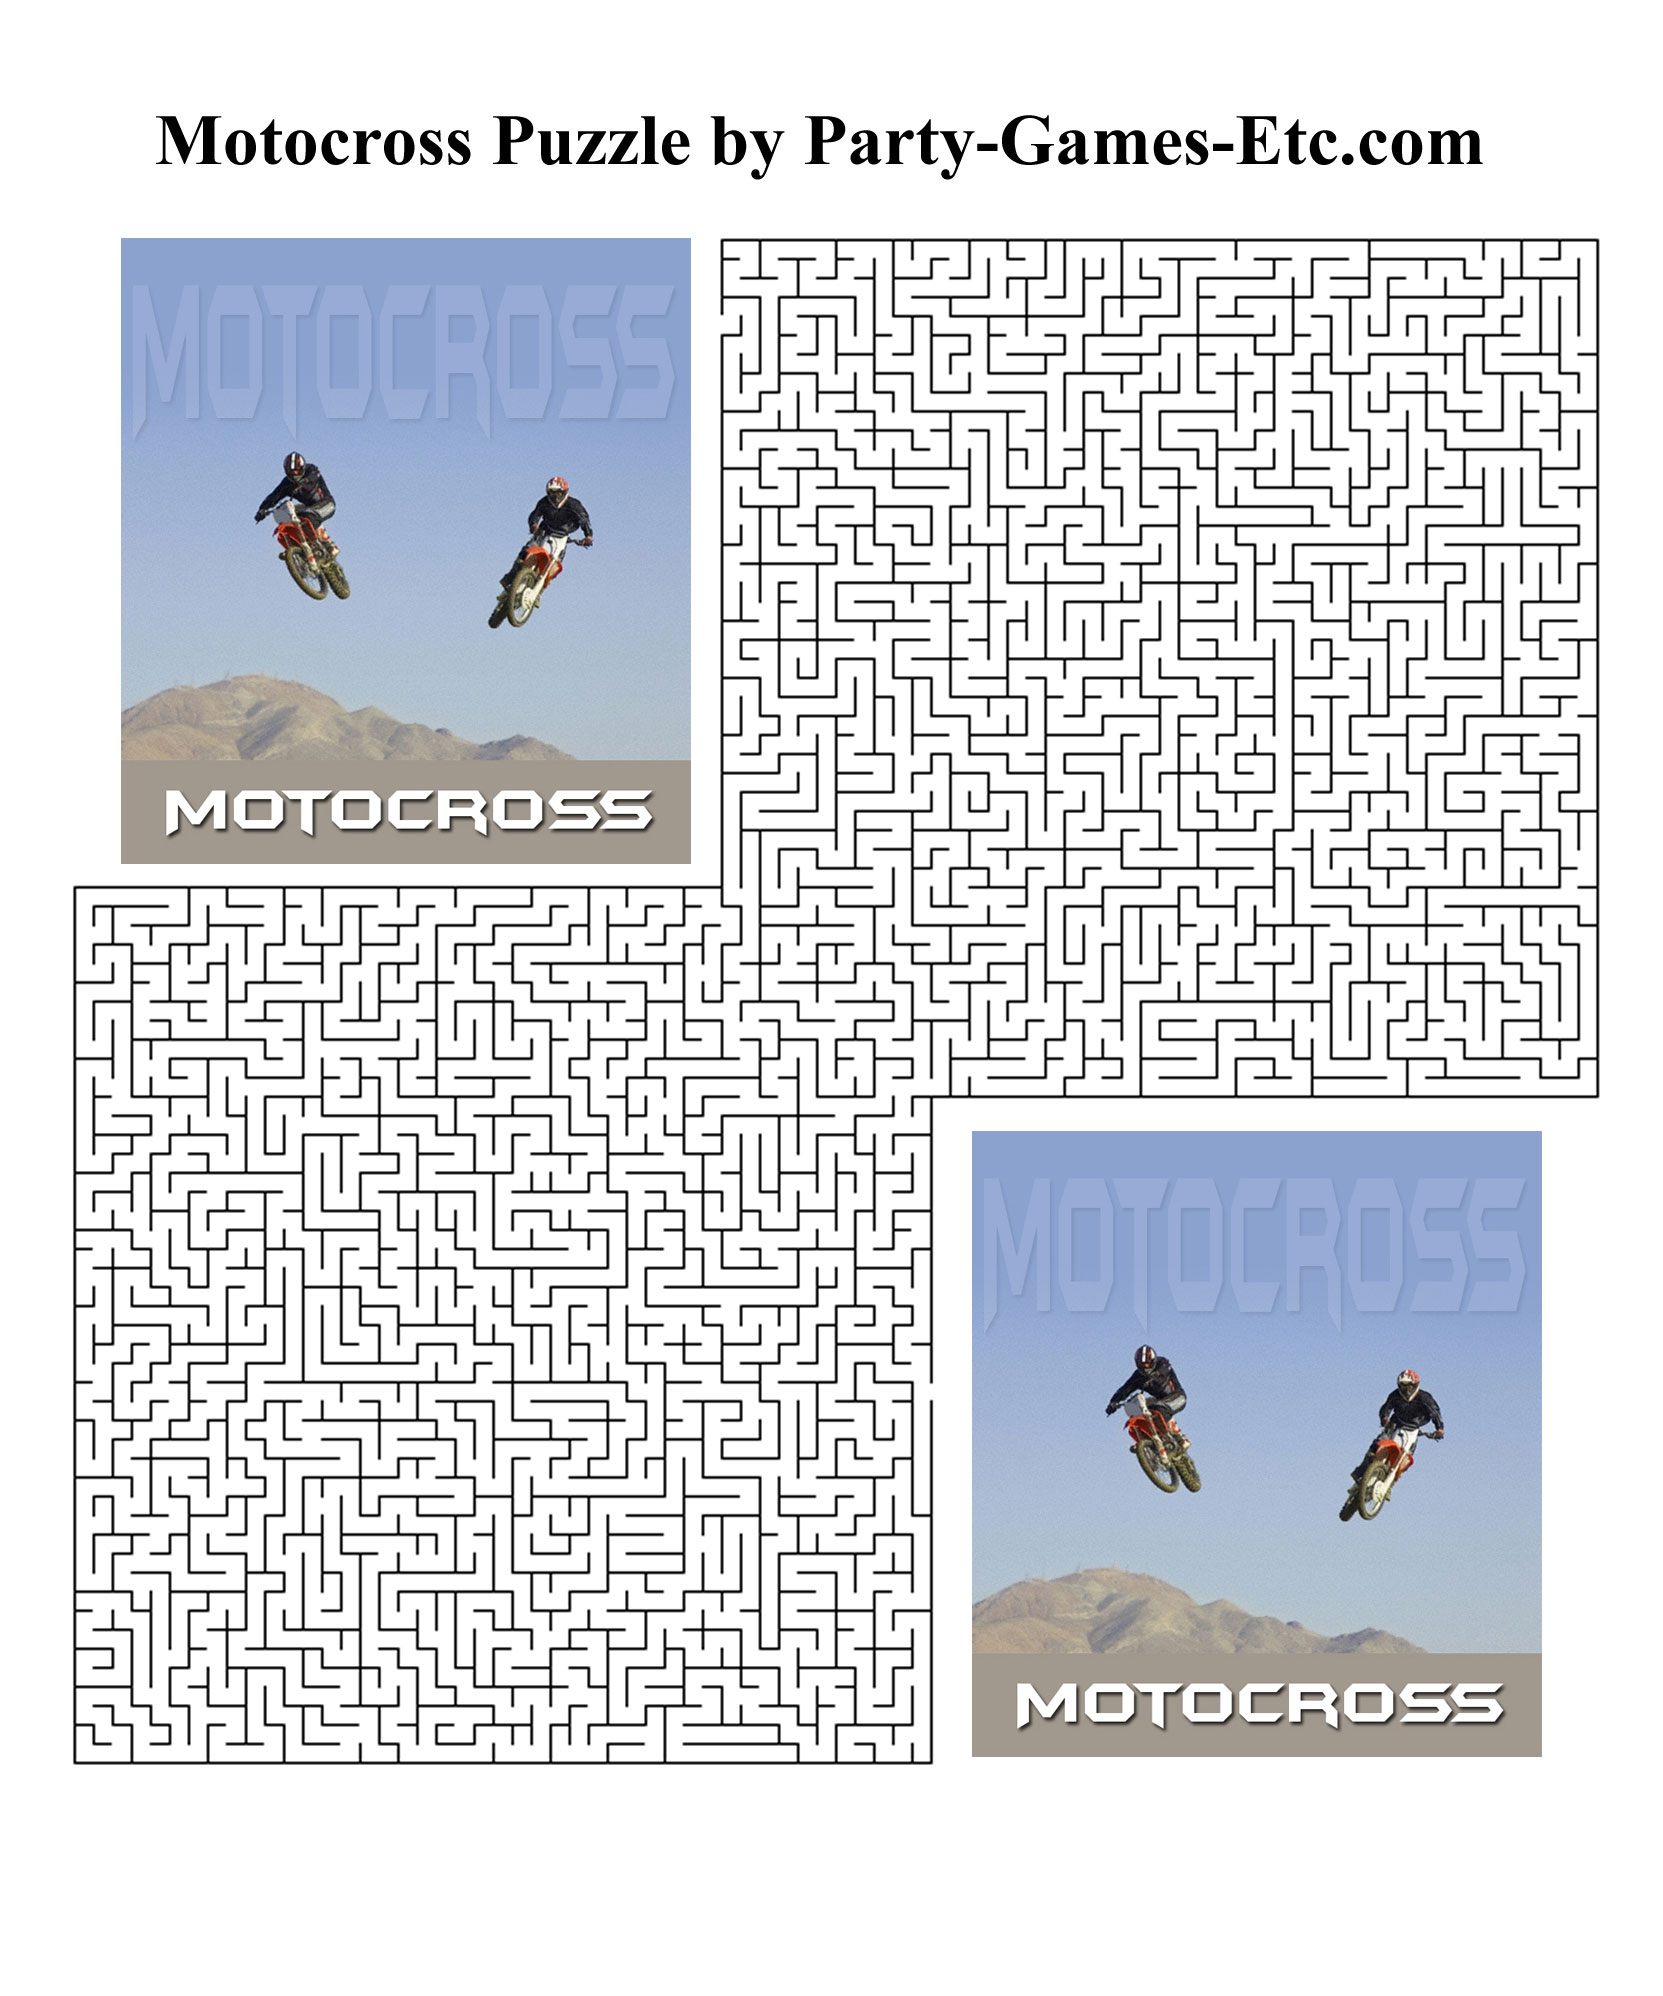 Free Printable Motocross Party Game and Pen and Paper Activity